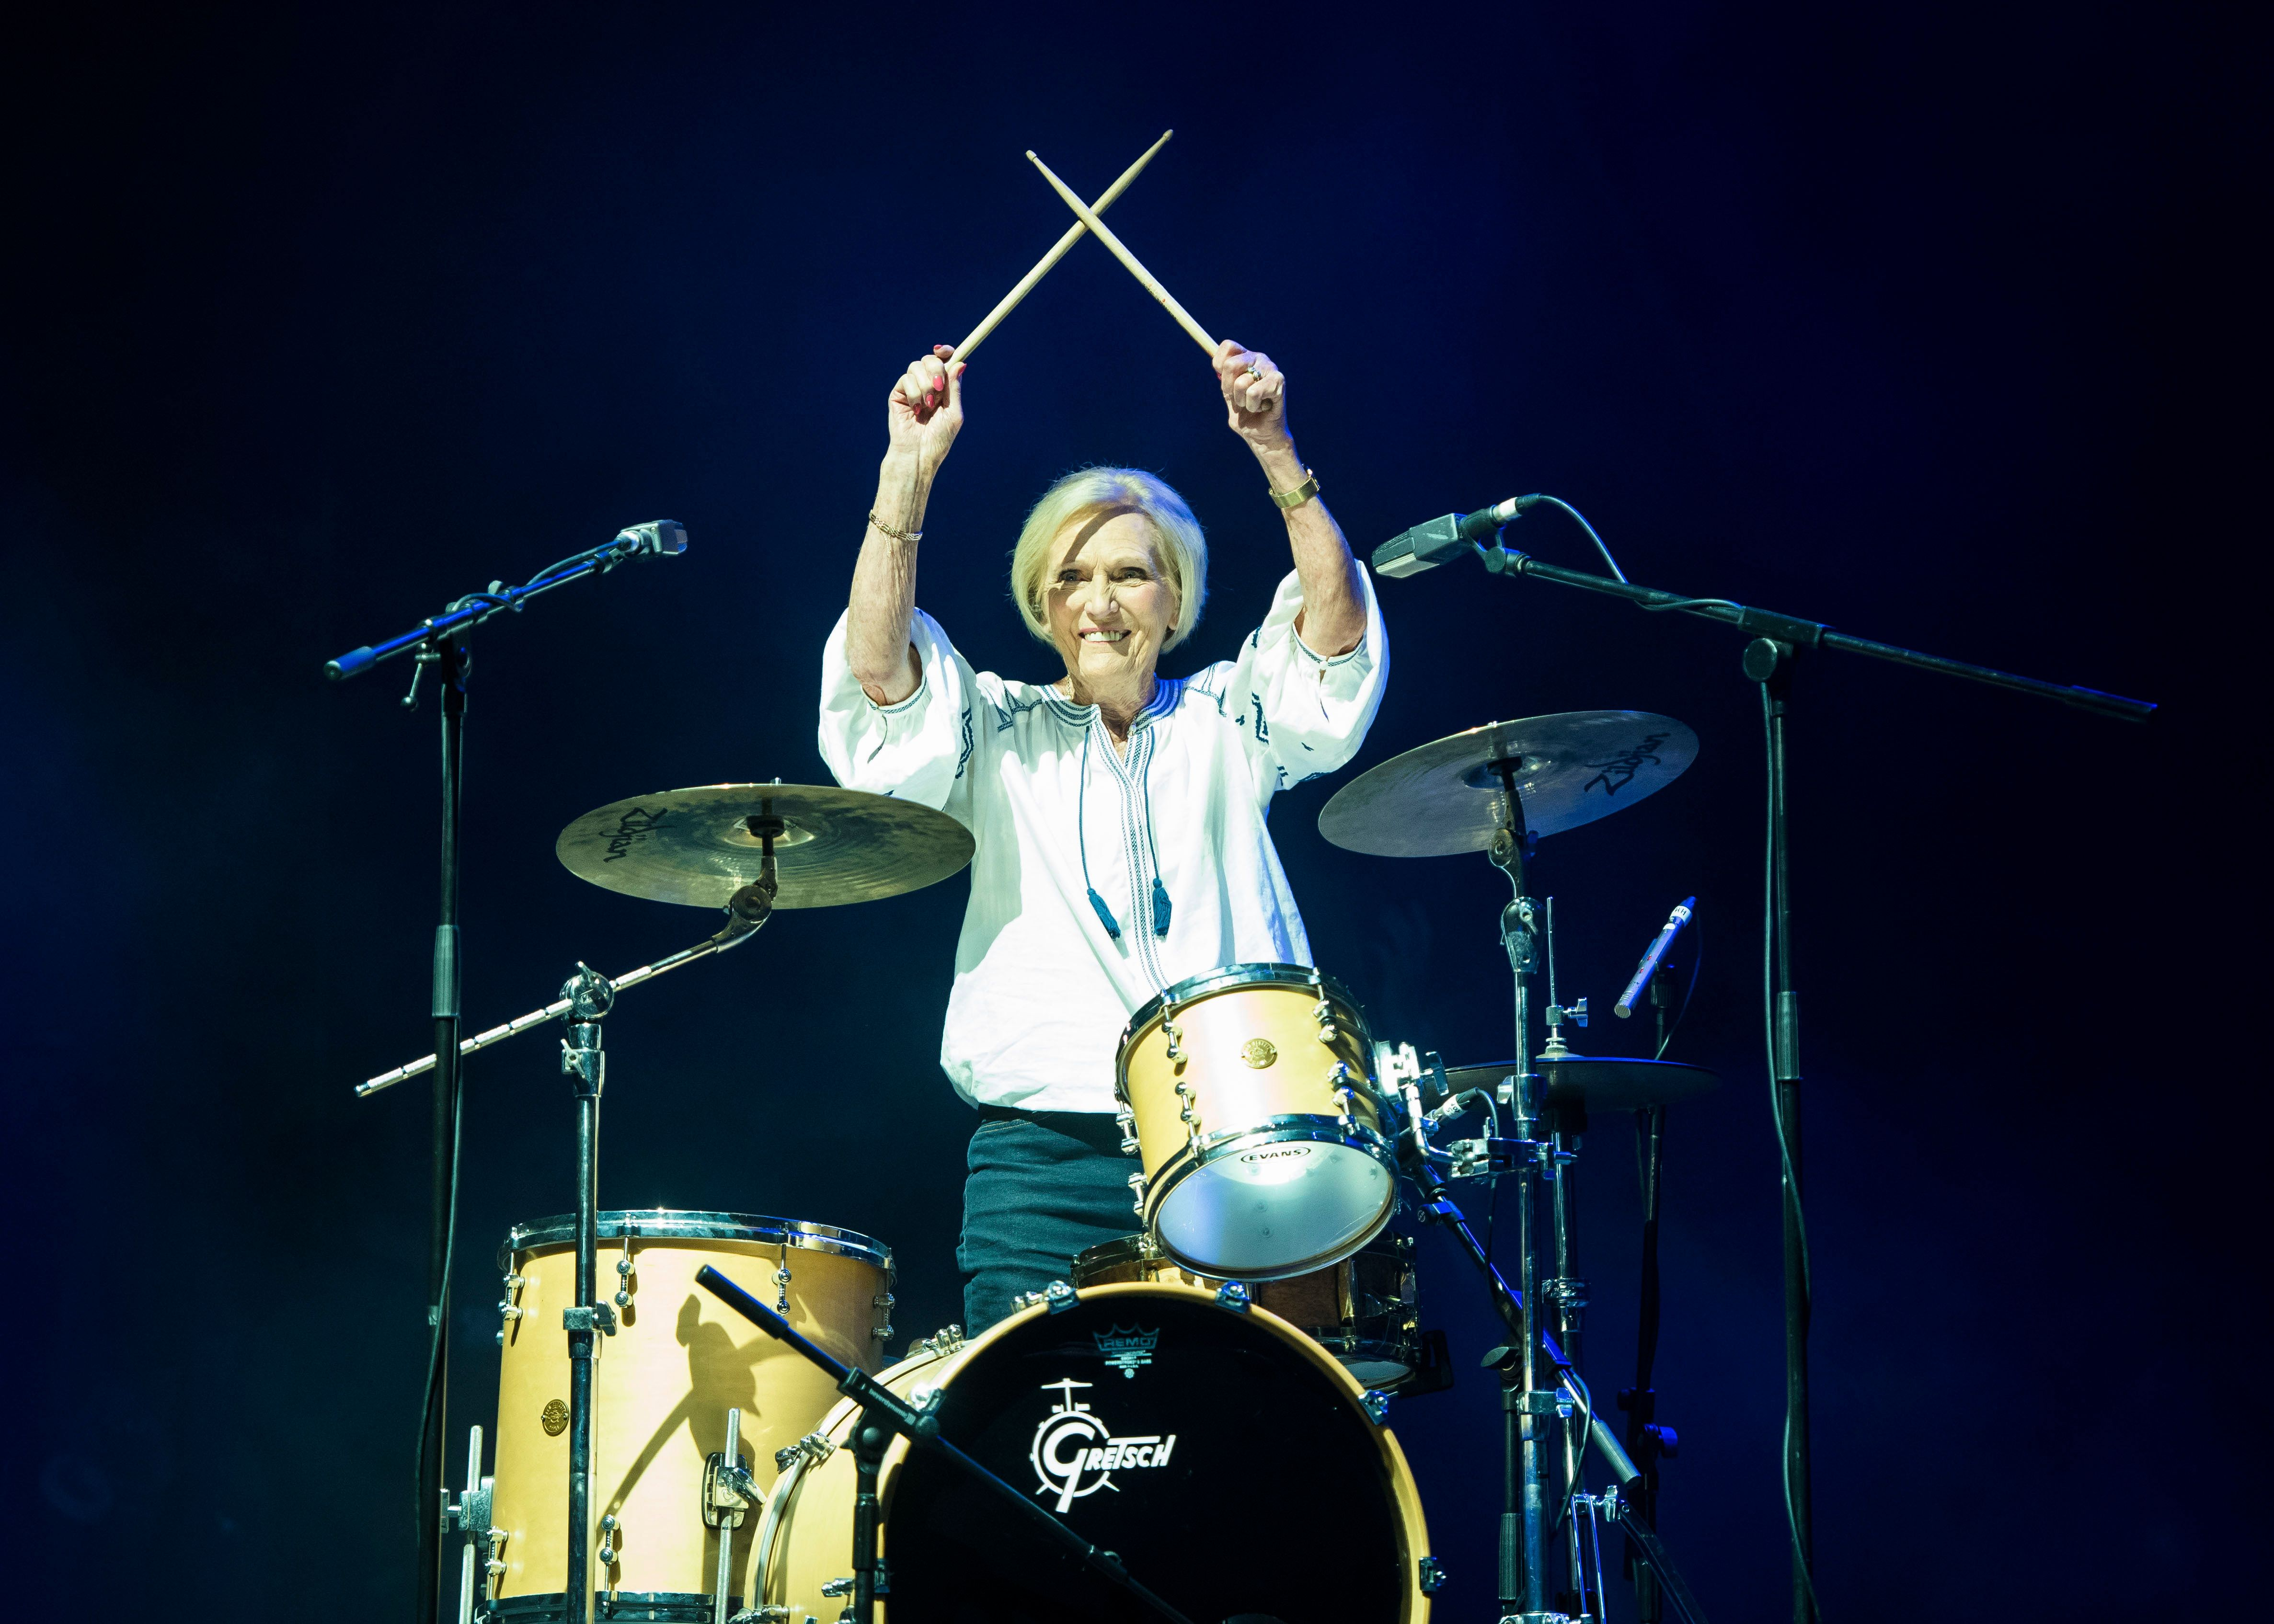 Camp Bestival Audience Stunned As Mary Berry Plays Drums For Rick